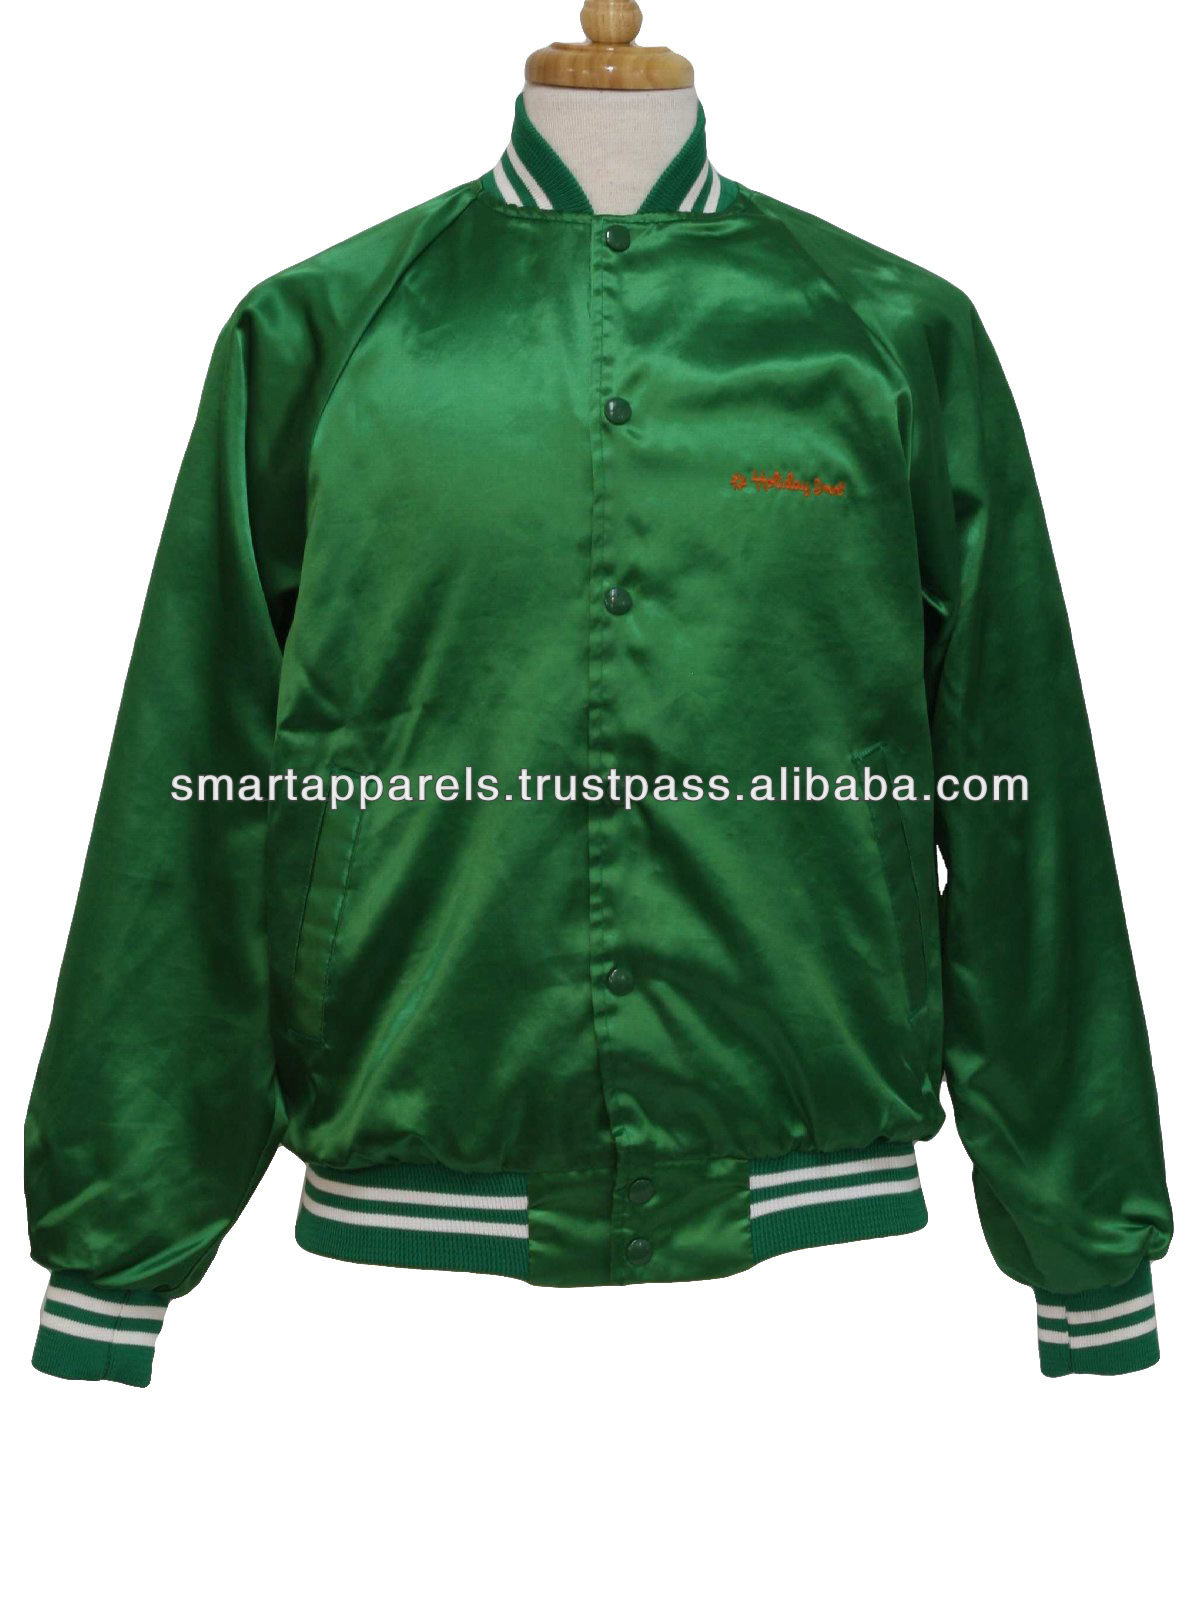 Baseball Jacket Green, Baseball Jacket Green Suppliers and ...